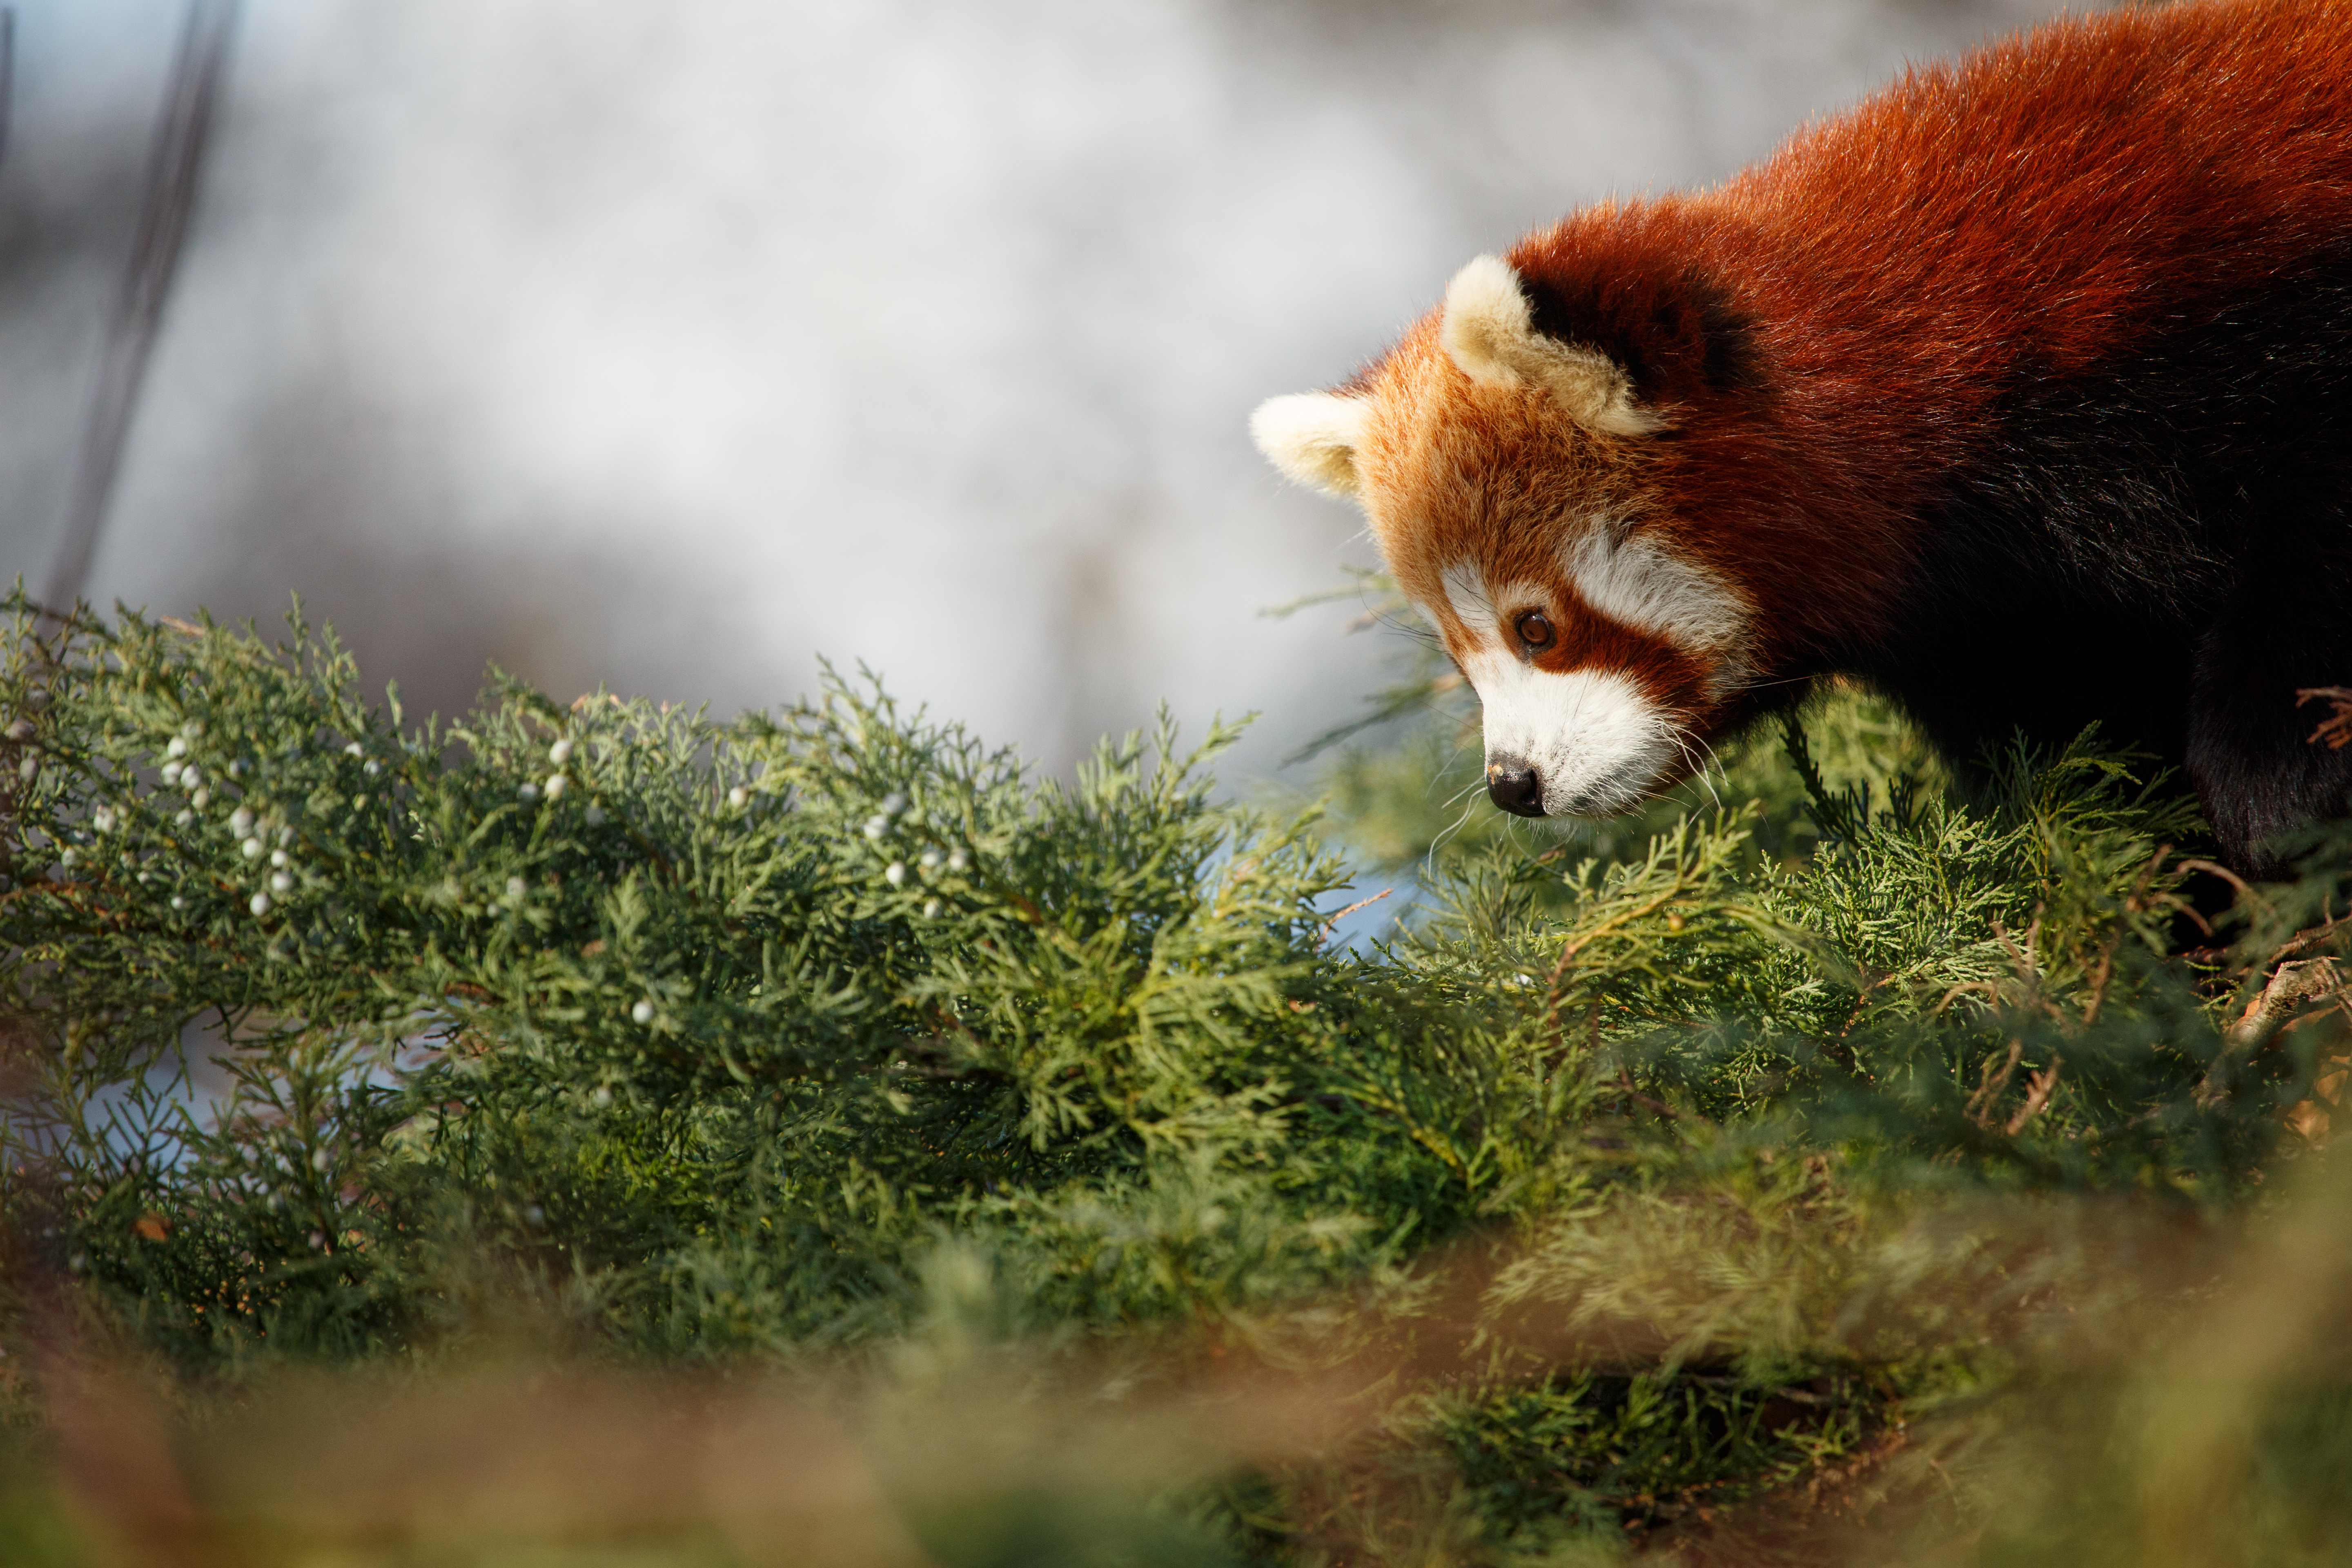 62334 download wallpaper Animals, Red Panda, Nice, Sweetheart, Panda, Profile screensavers and pictures for free